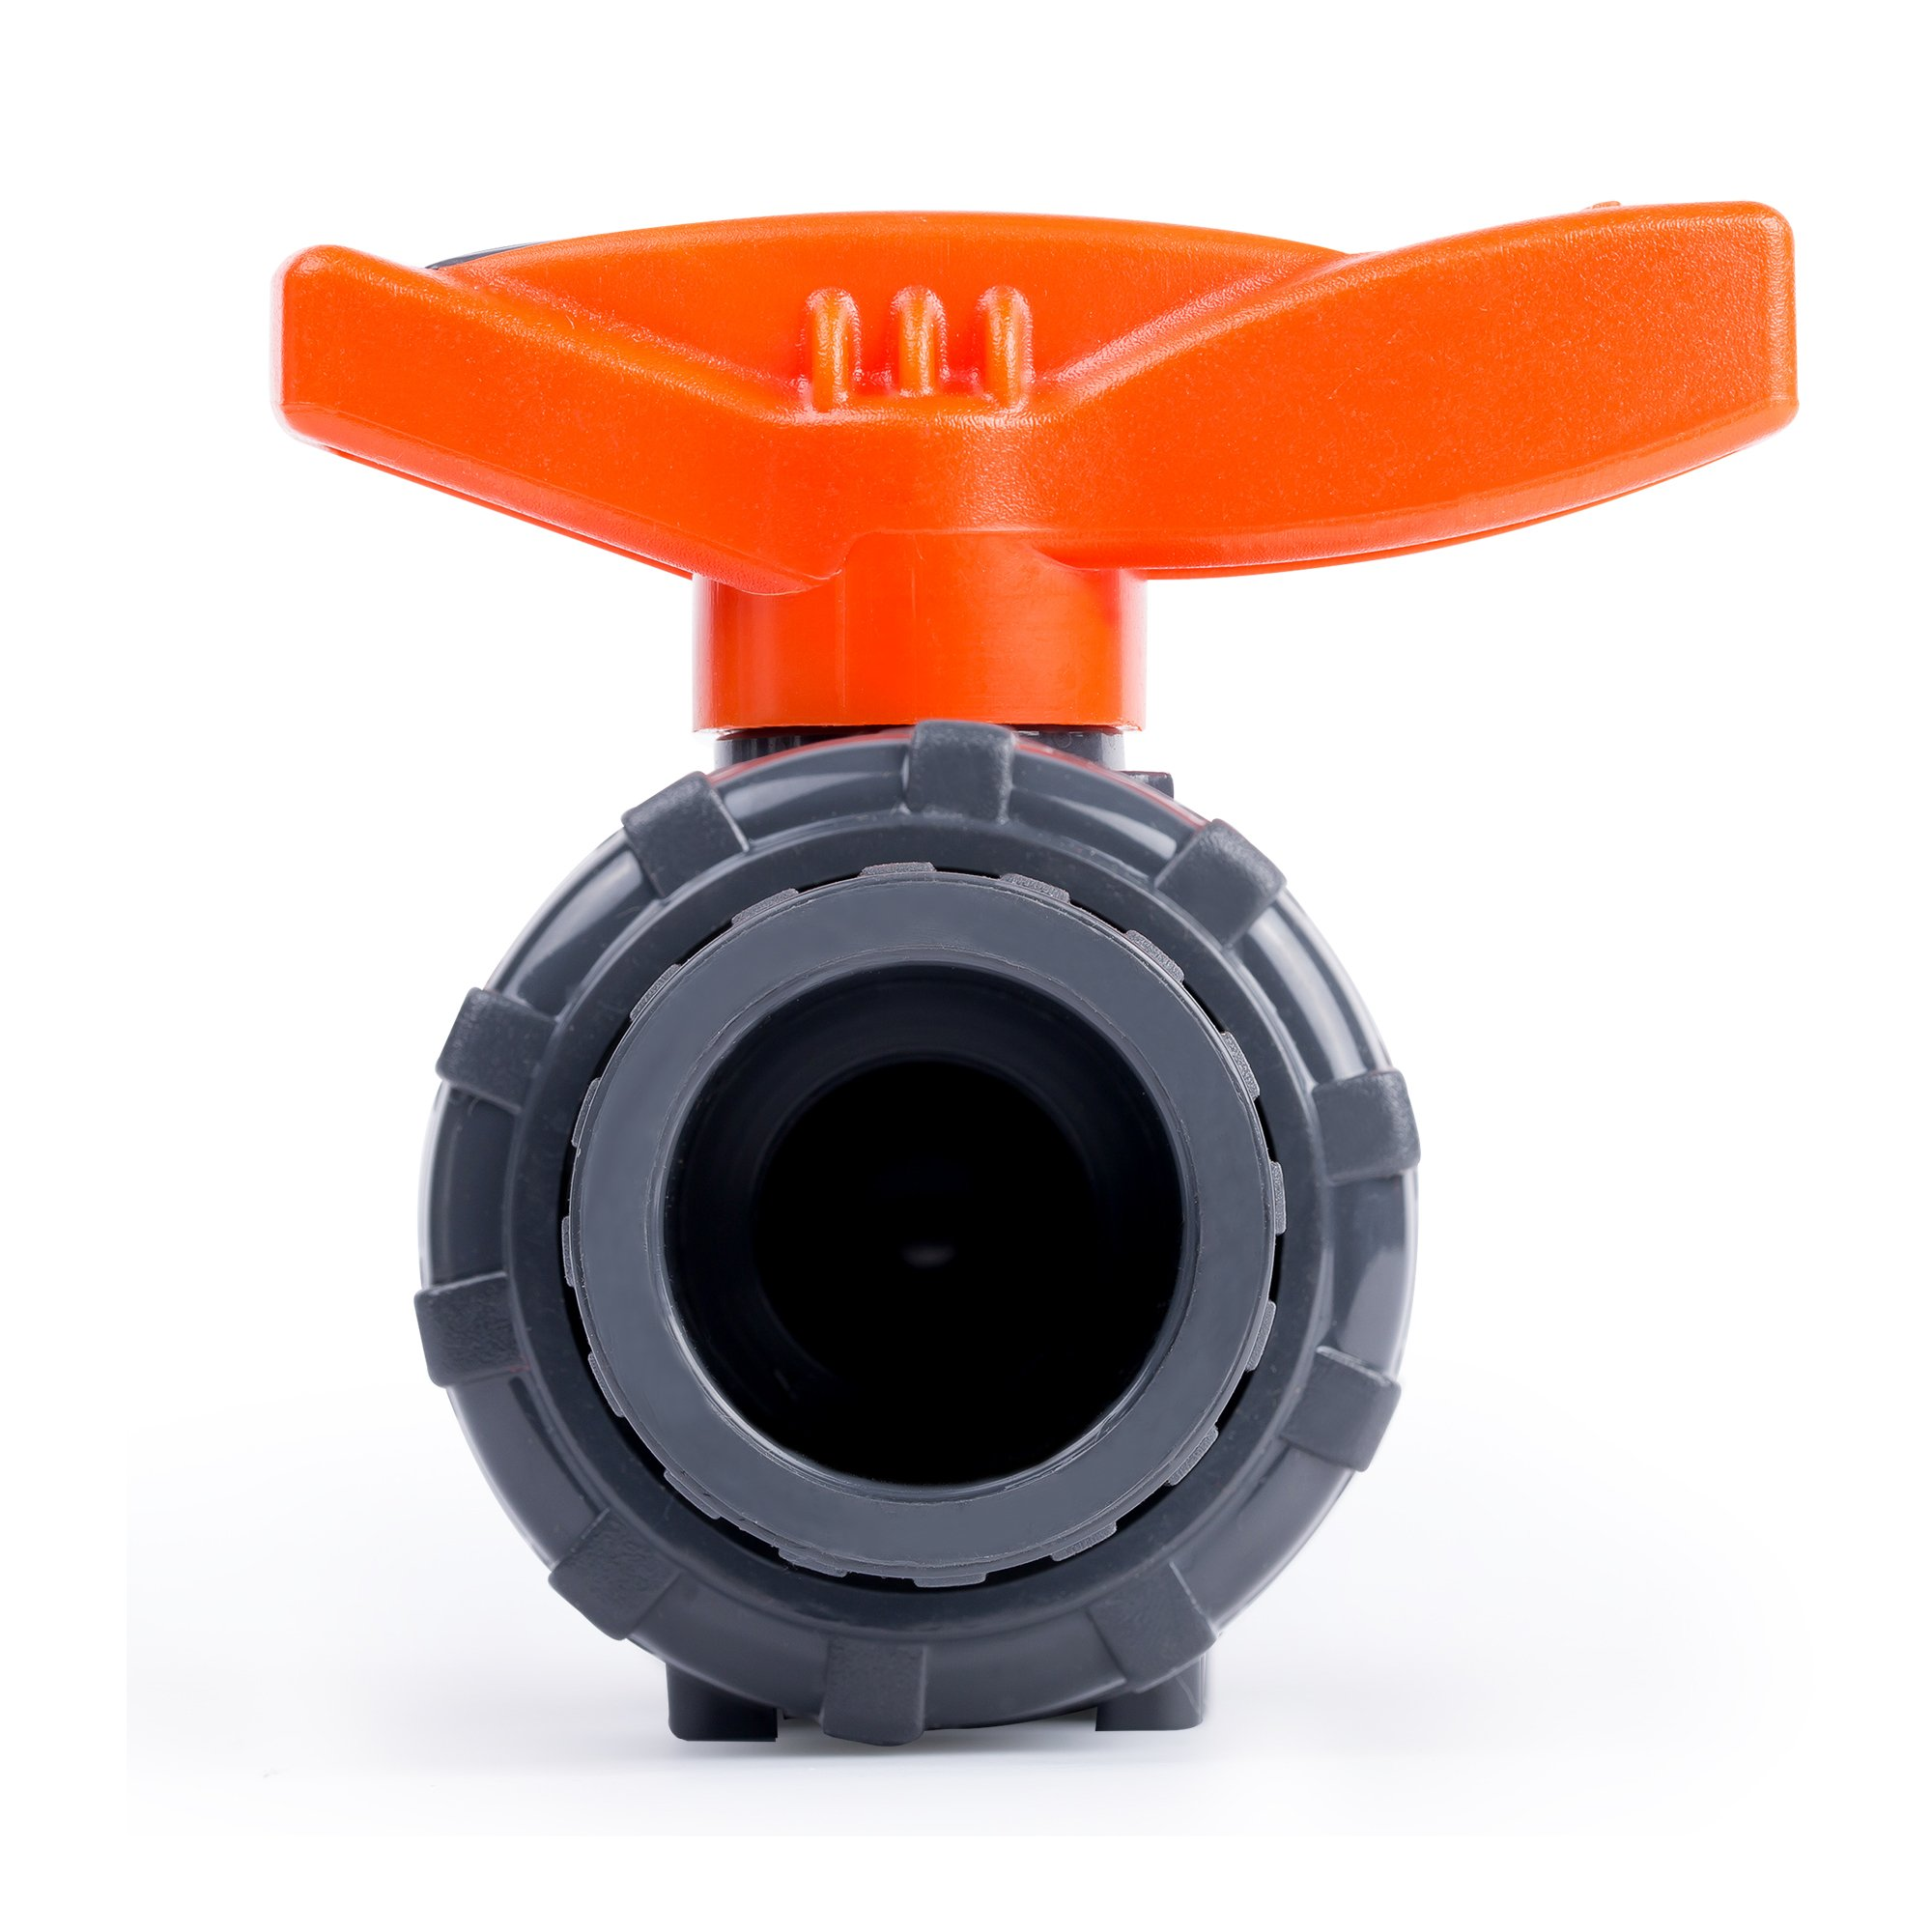 HYDROSEAL Kaplan 3/4'' PVC True Union Ball Valve with Full Port, ASTM F1970, EPDM O-Rings and Reversible PTFE Seats, Rated at 200 PSI @73F, Gray, 3/4 inch Socket (3/4'') by Hydroseal (Image #8)